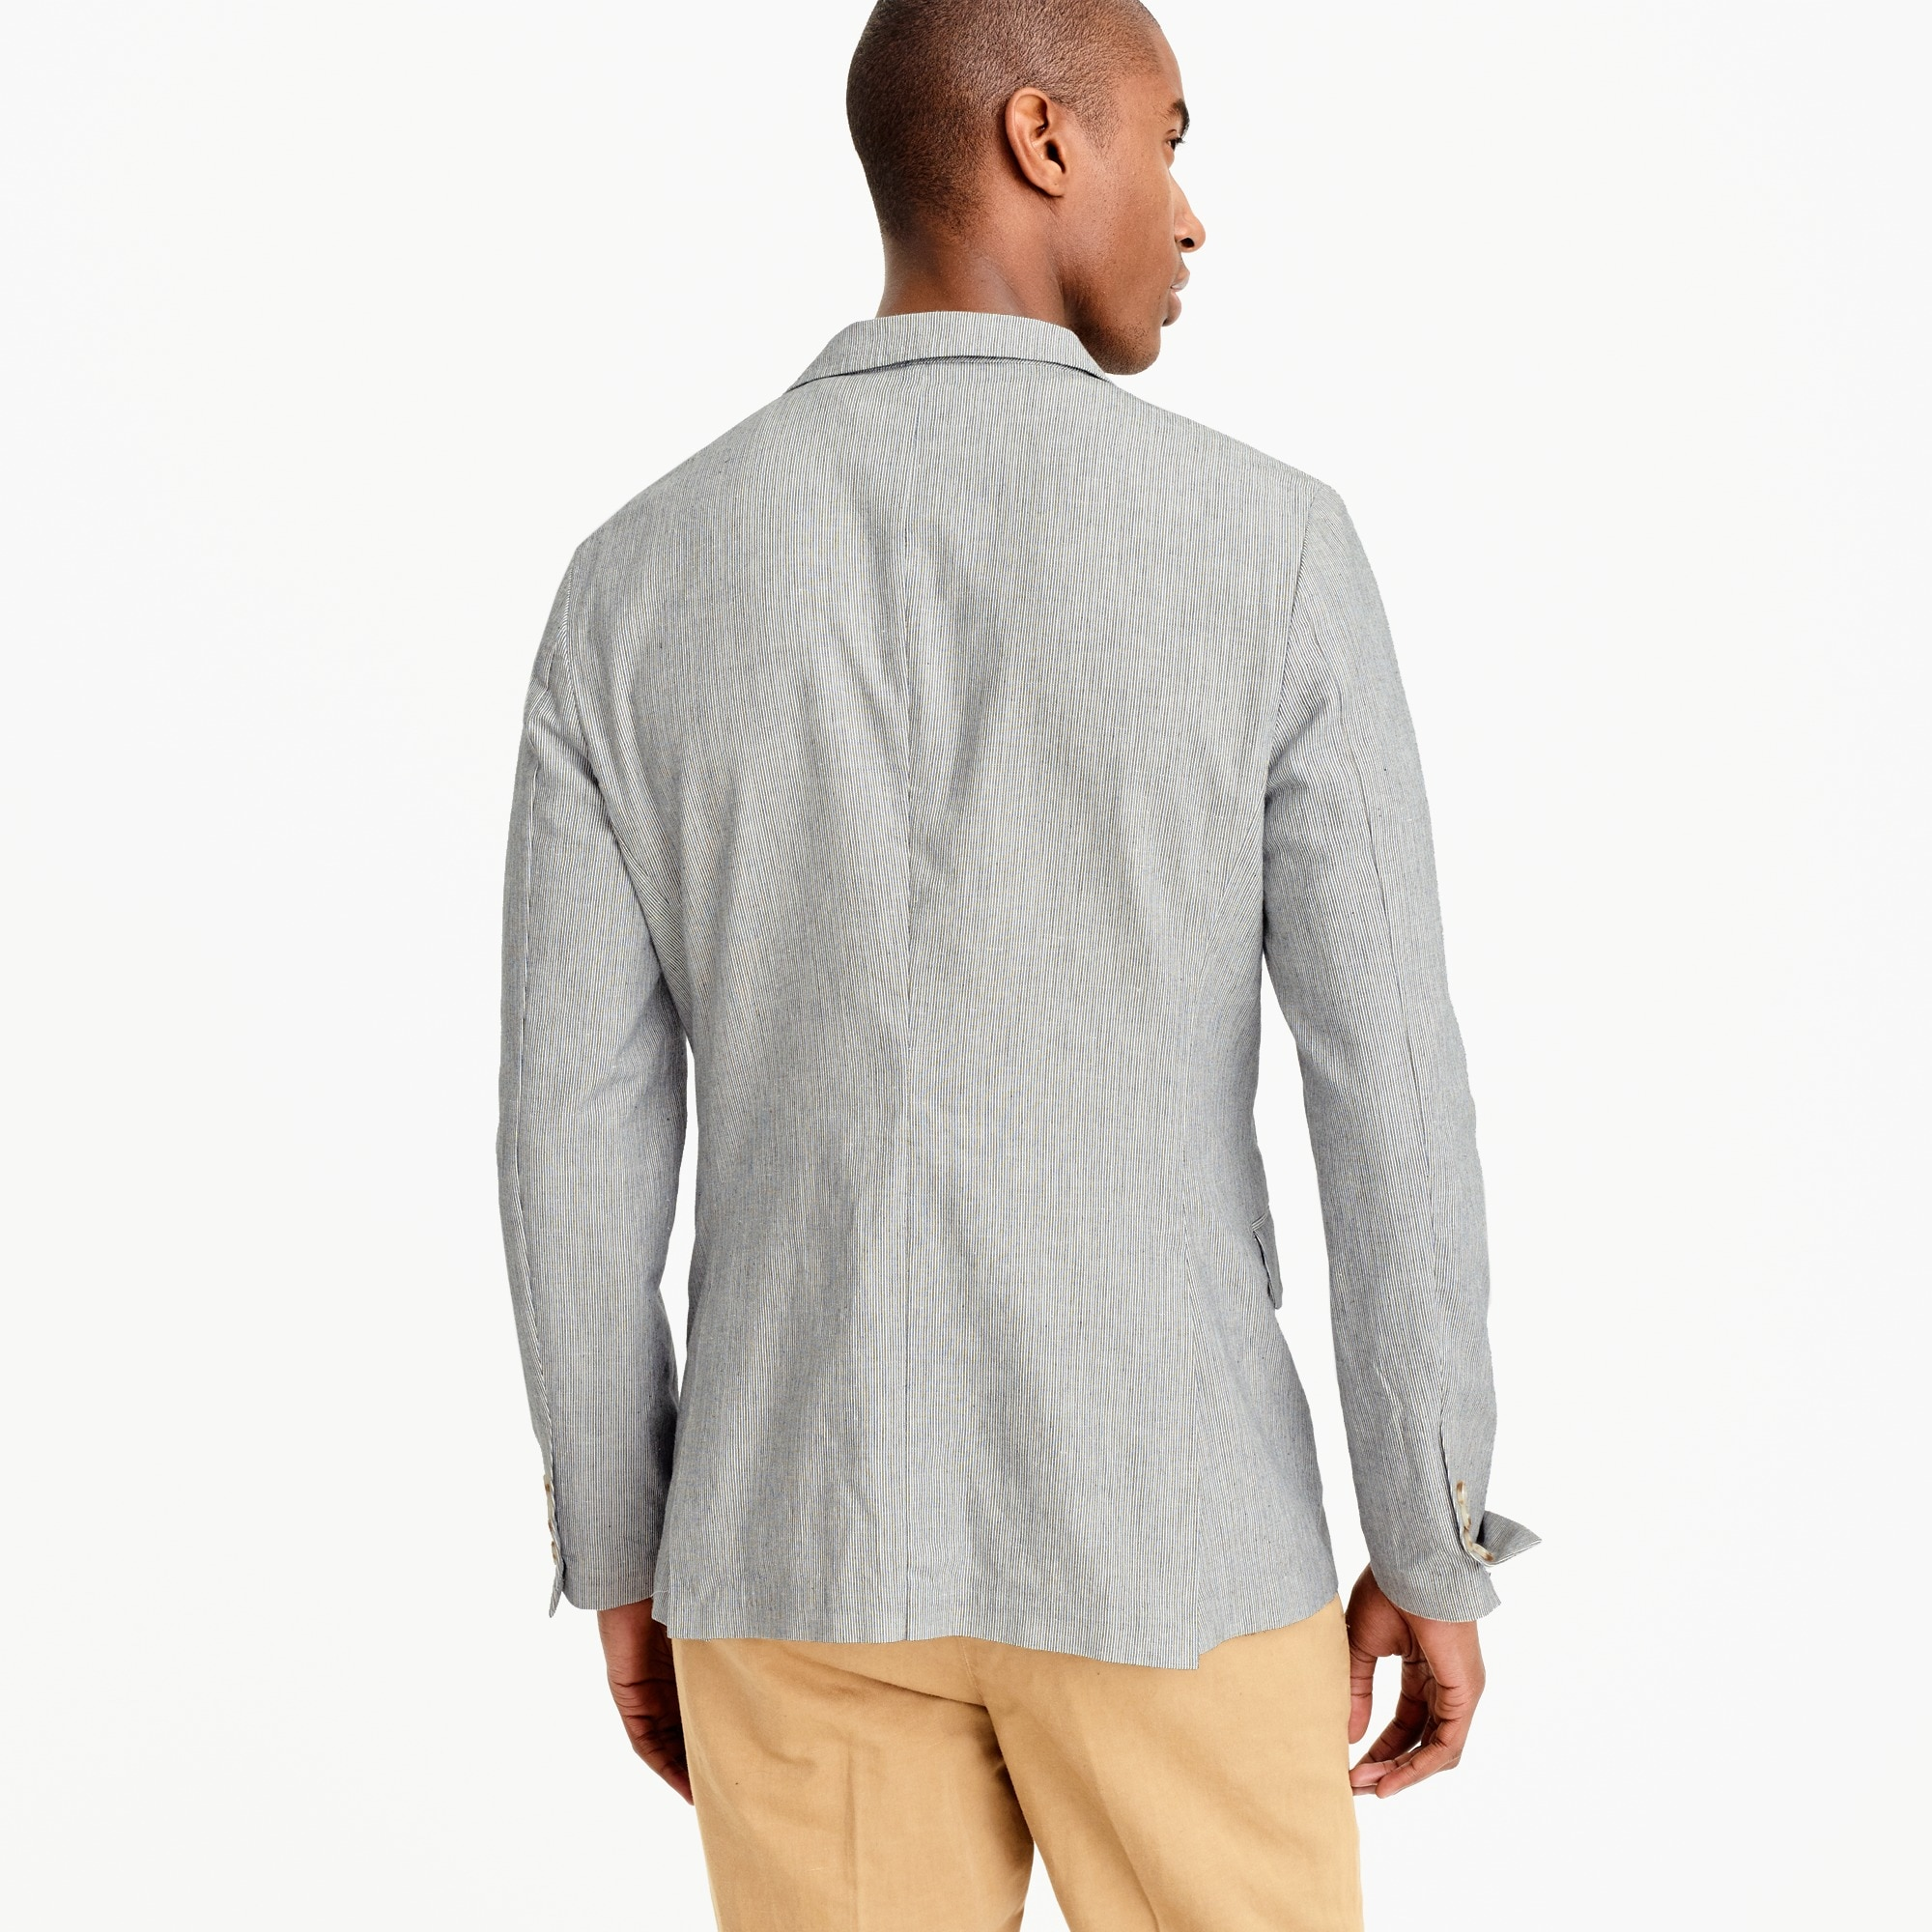 Image 3 for Unstructured Ludlow blazer in cotton-linen